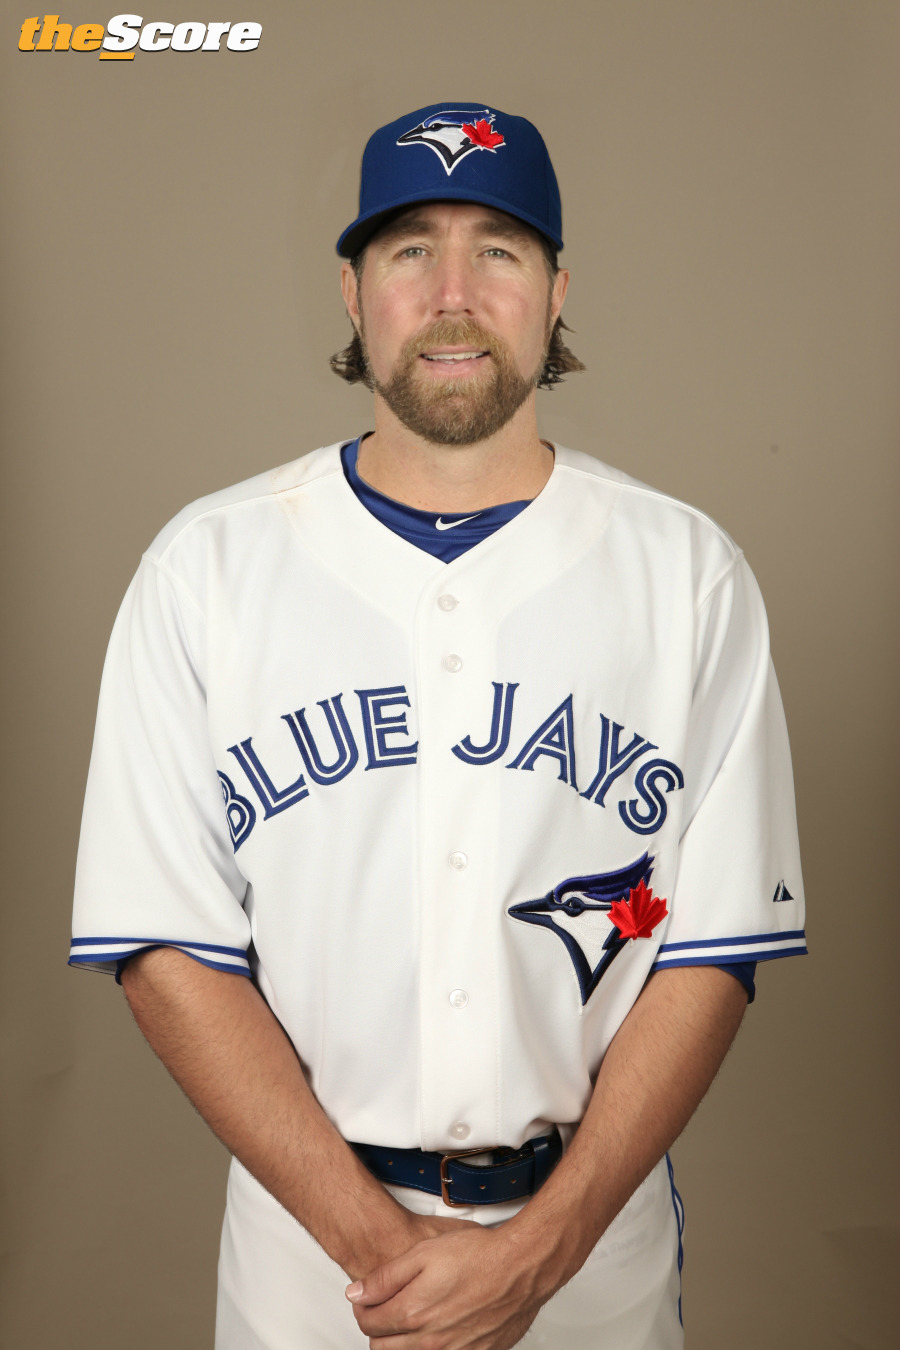 Pic: Does Dickey look good in #BlueJays Blue?